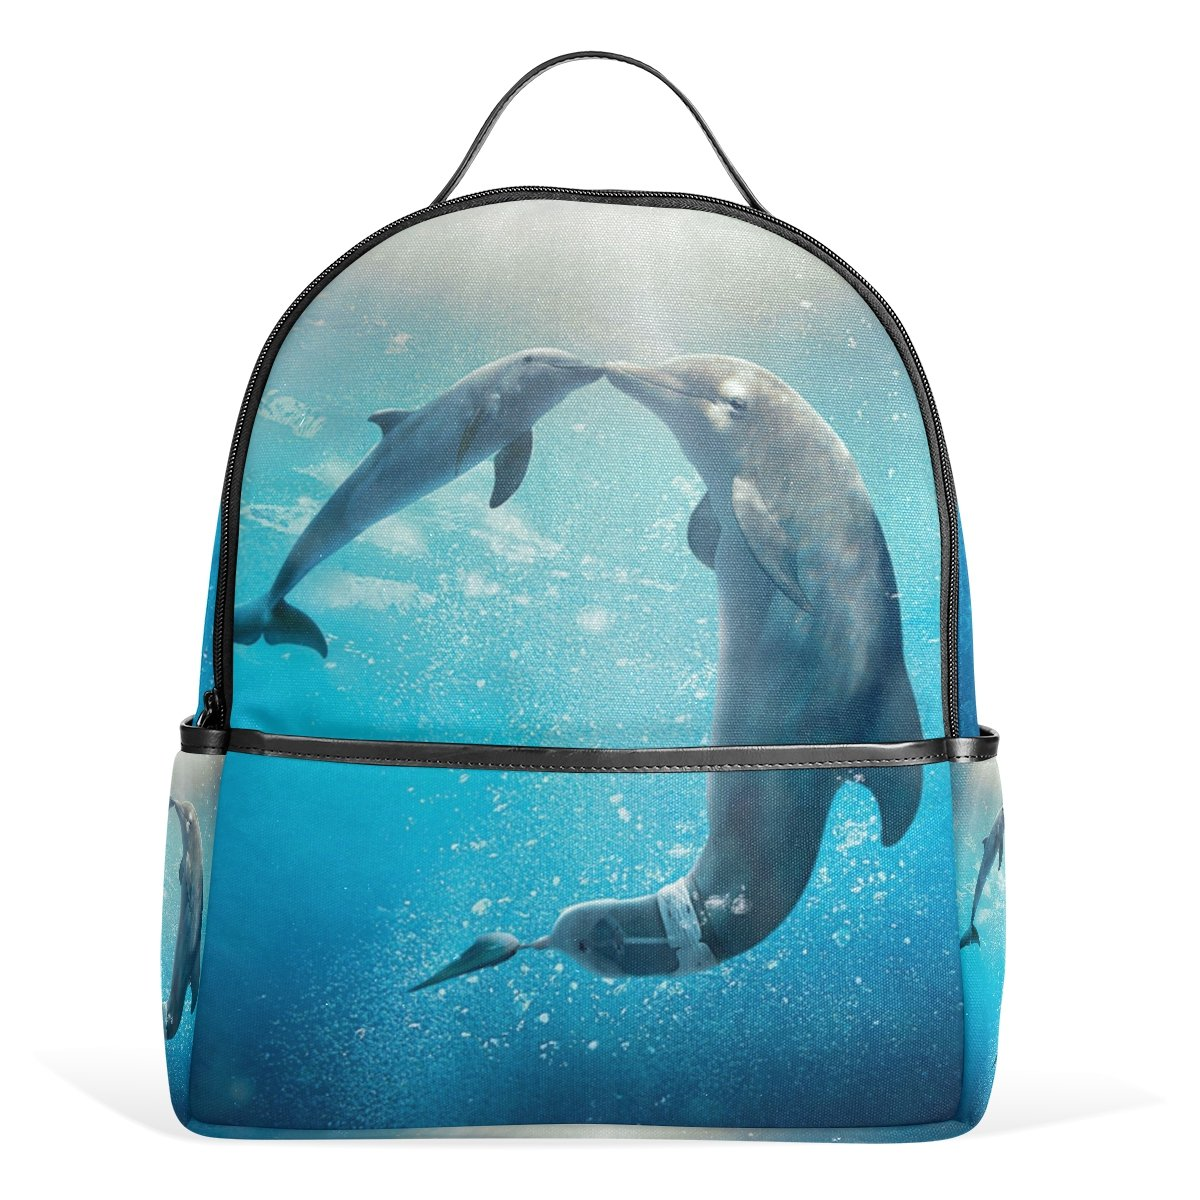 Sunlome Kiss Dolphin Tale Pattern Laptop Backpack Casual Shoulder Daypack for Student School Bag Handbag - Lightweight on sale